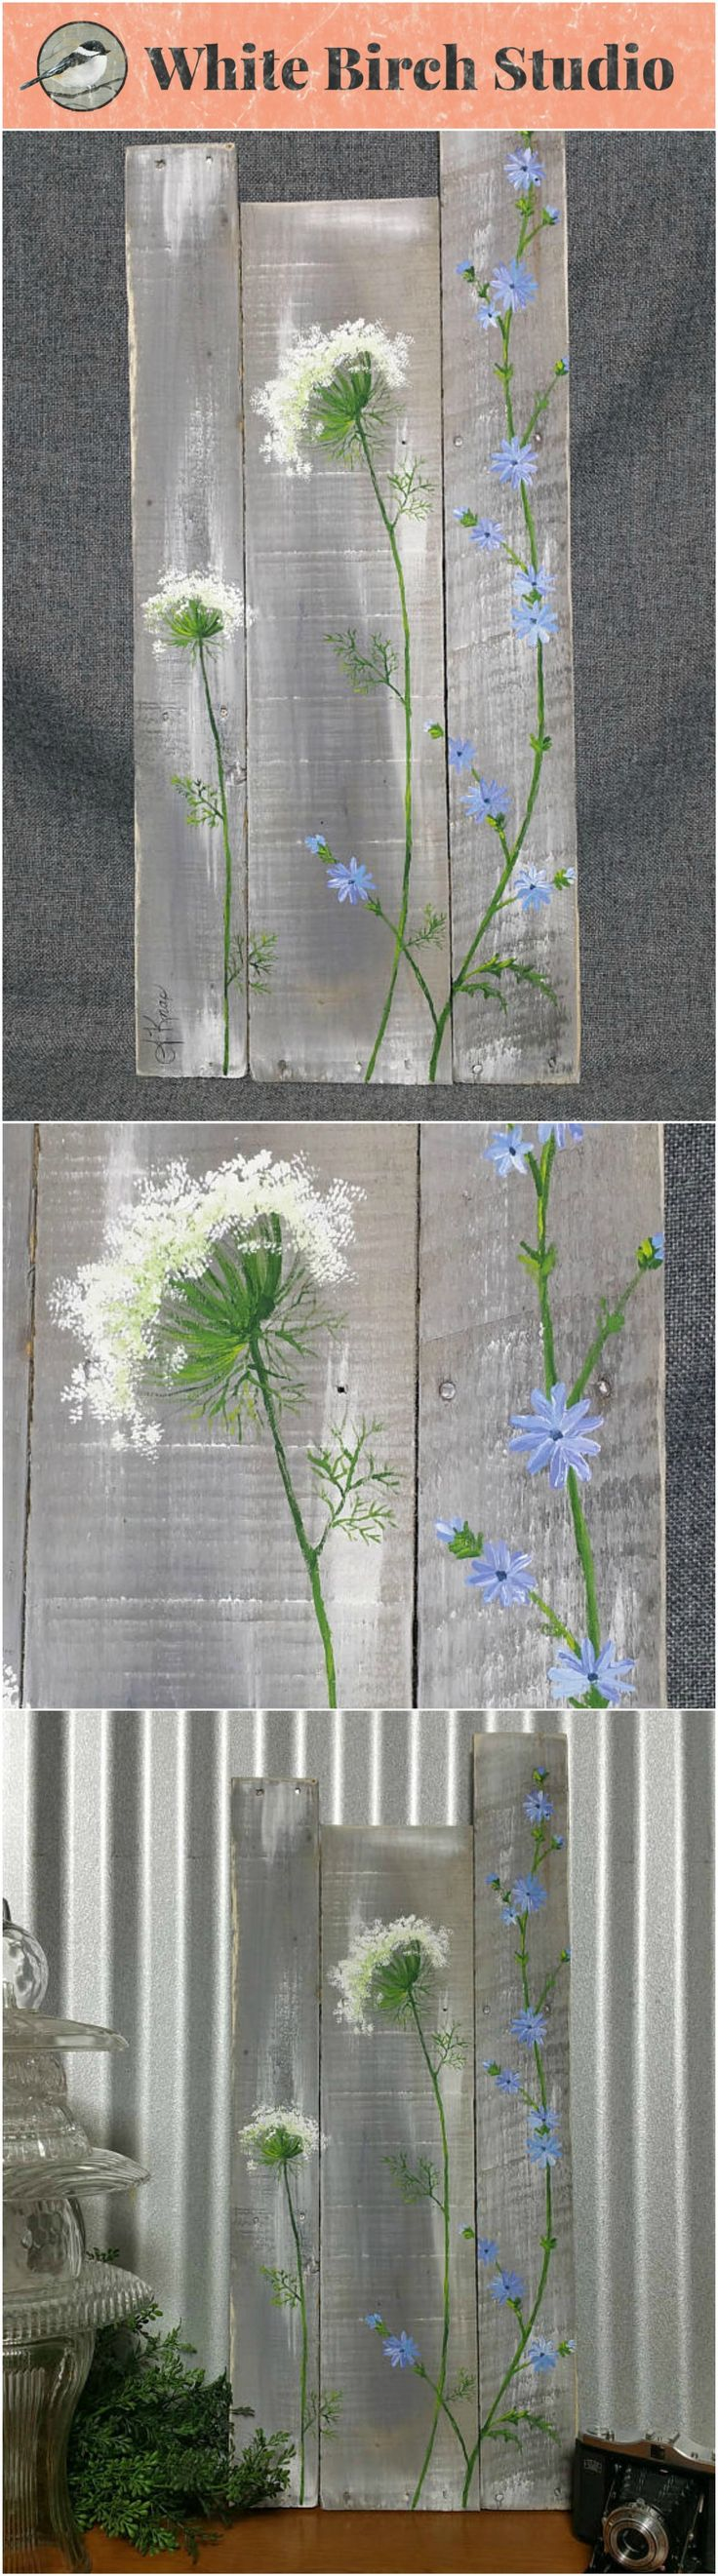 Primitive stencil home sweet home 12x12 for painting signs crafts - Pallet Wall Art Wild Flowers Greenery Farmhouse Decor Gray Aged Wood Hand Painted Flowers Queen Ann Lace Rustic Shabby Reclaimed This Gray And